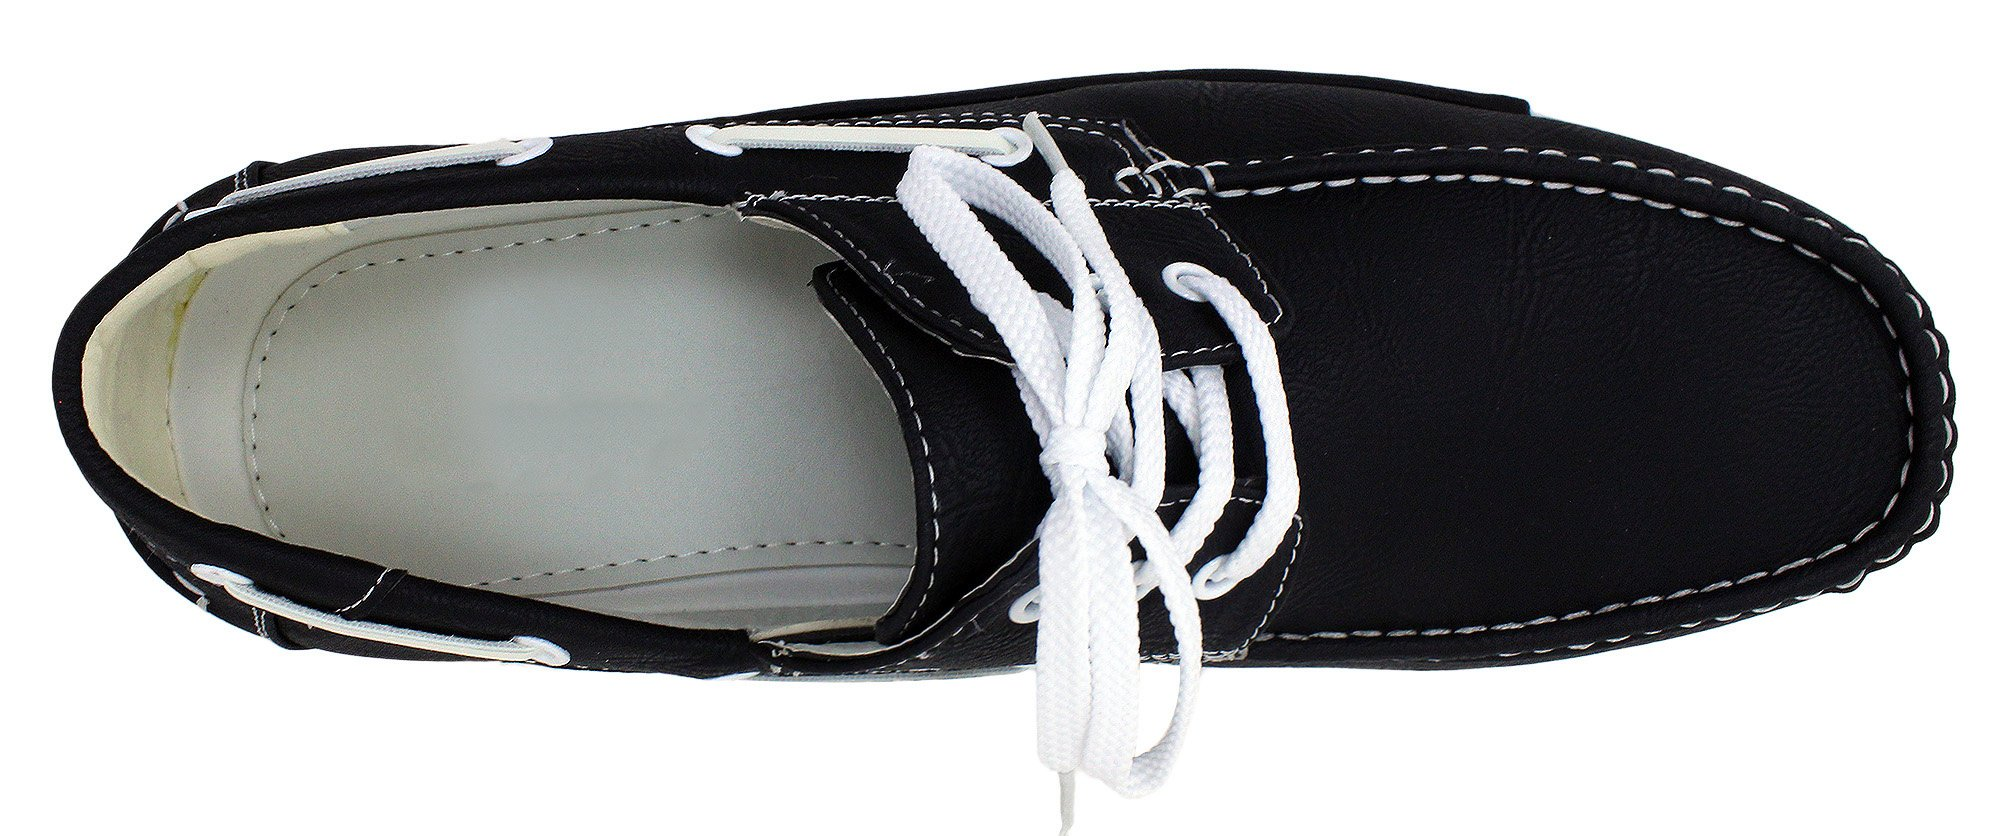 Enimay Men's Free Slip-On Loafer Boat Shoe PU Leather Fine Crafted Lounge Black White 8.5 by Enimay (Image #5)